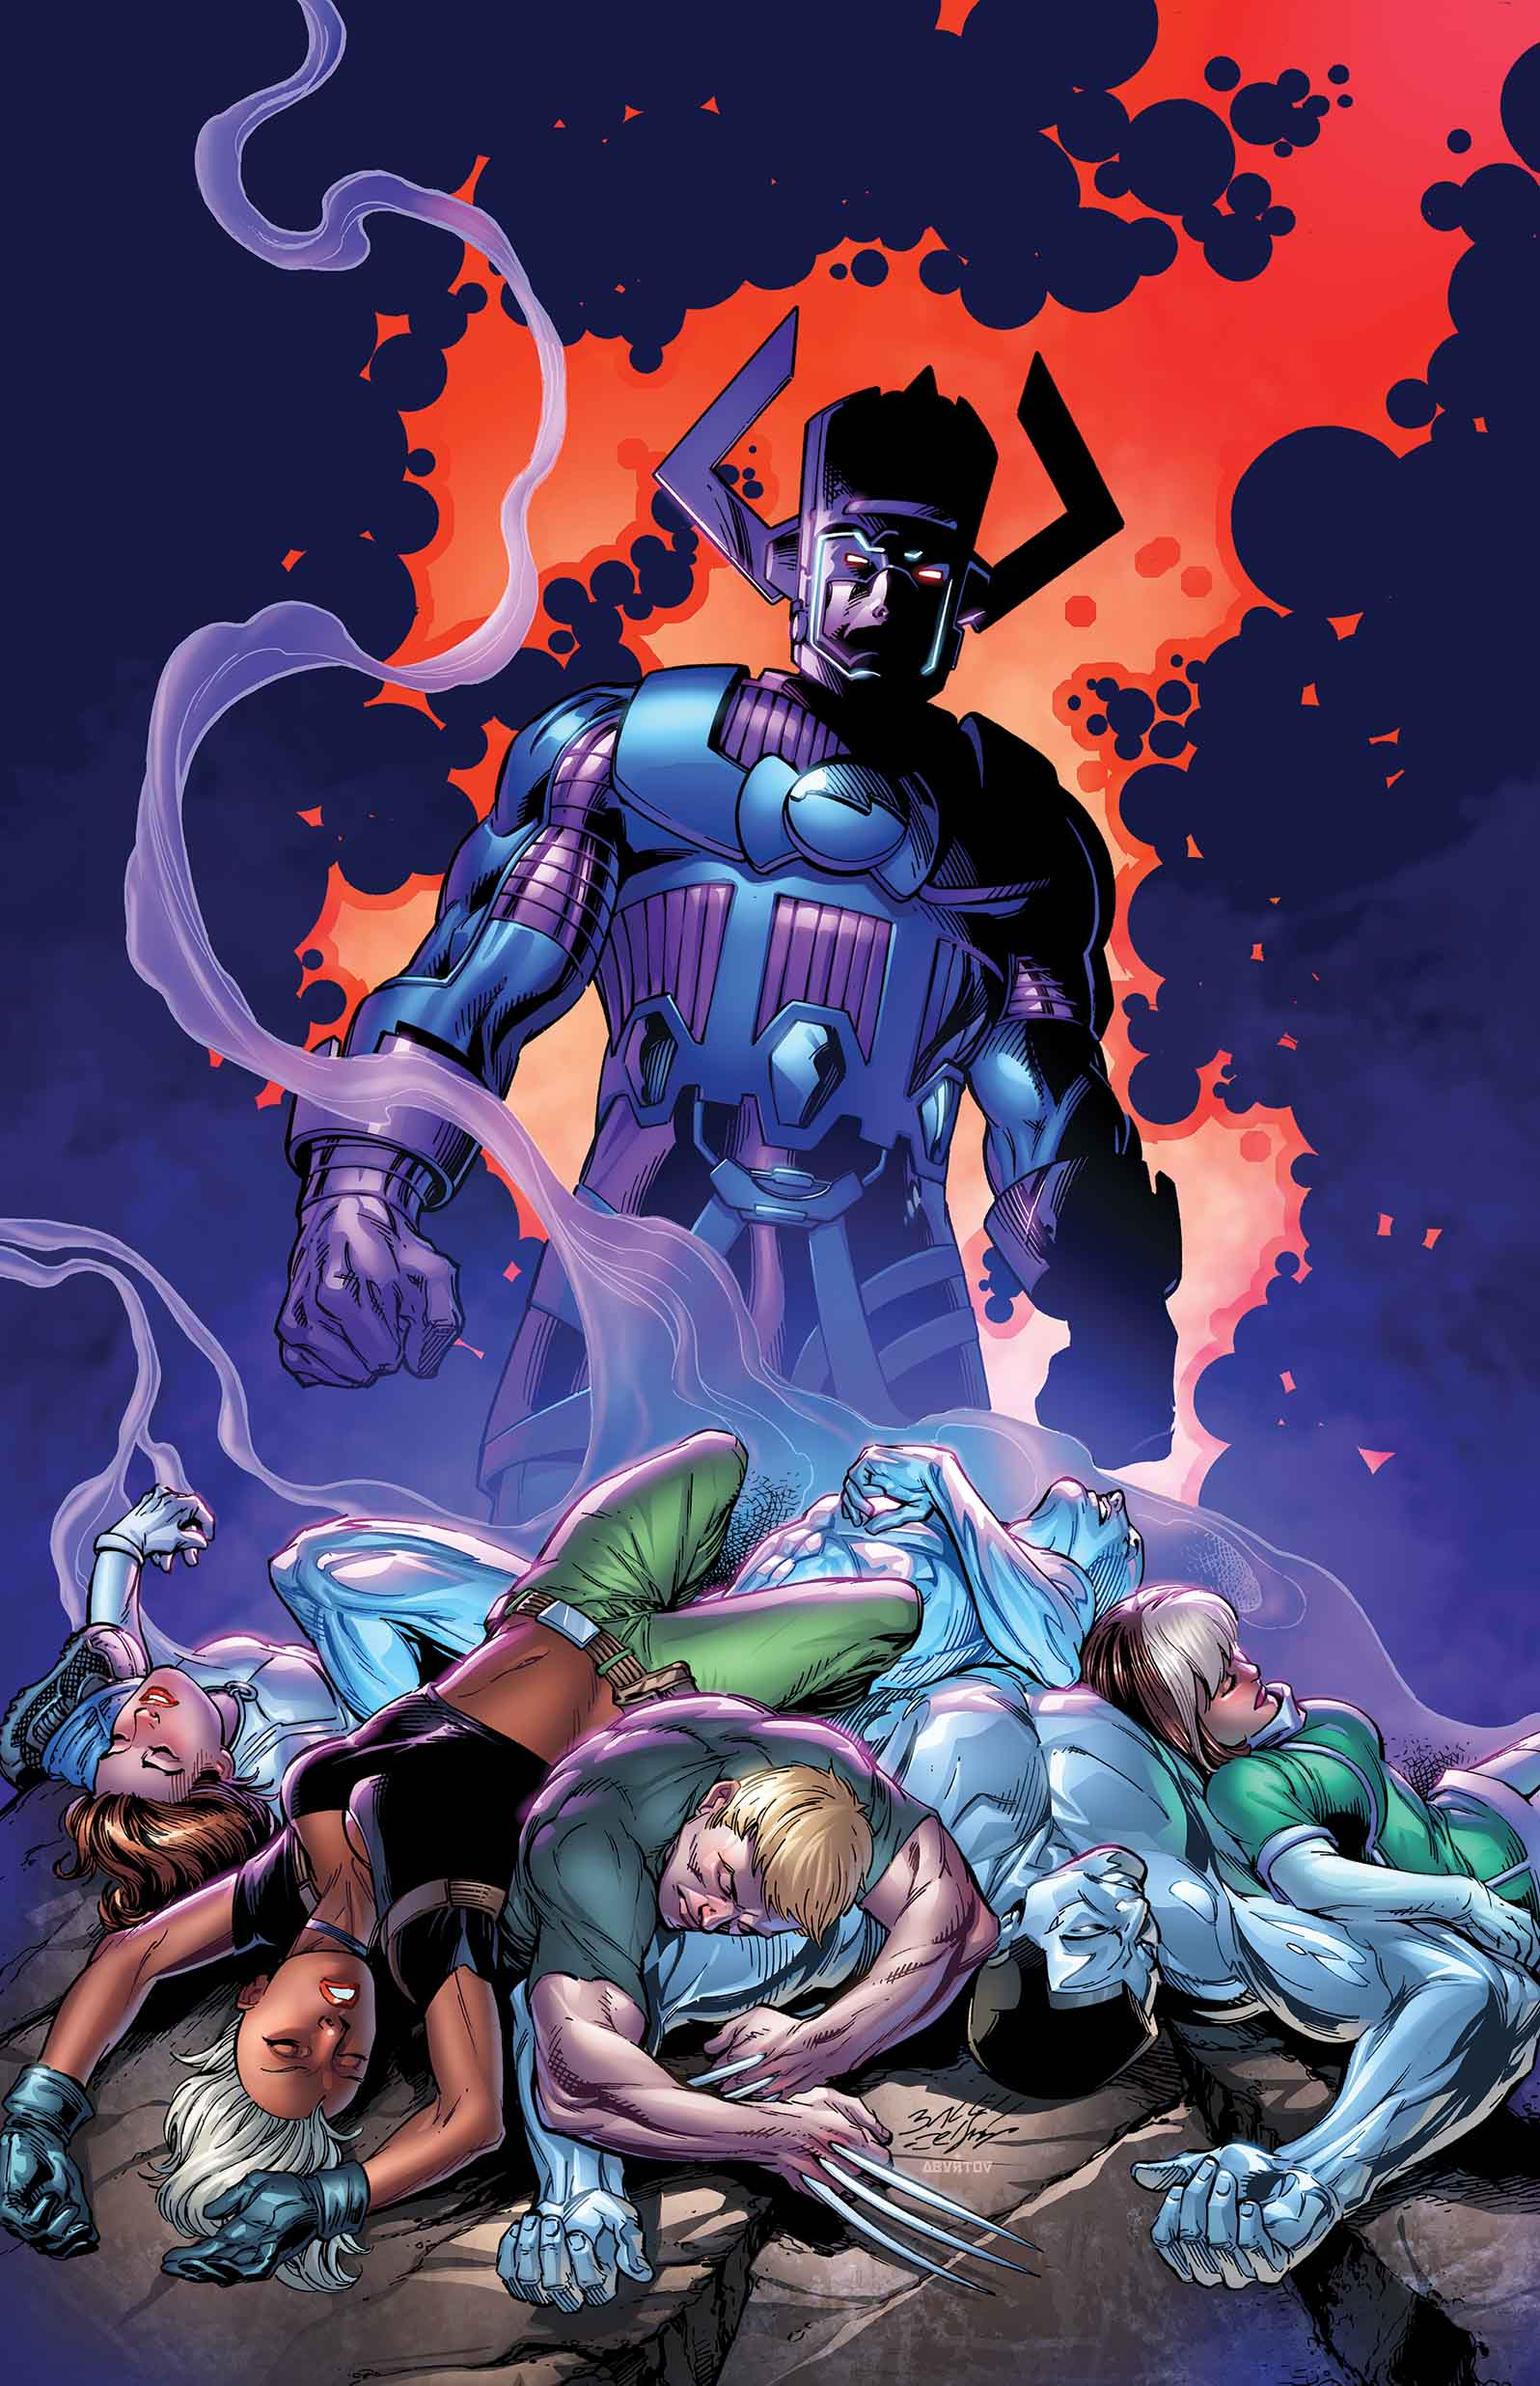 Cataclysm_Ultimates_Last_Stand_3_Cover.jpg